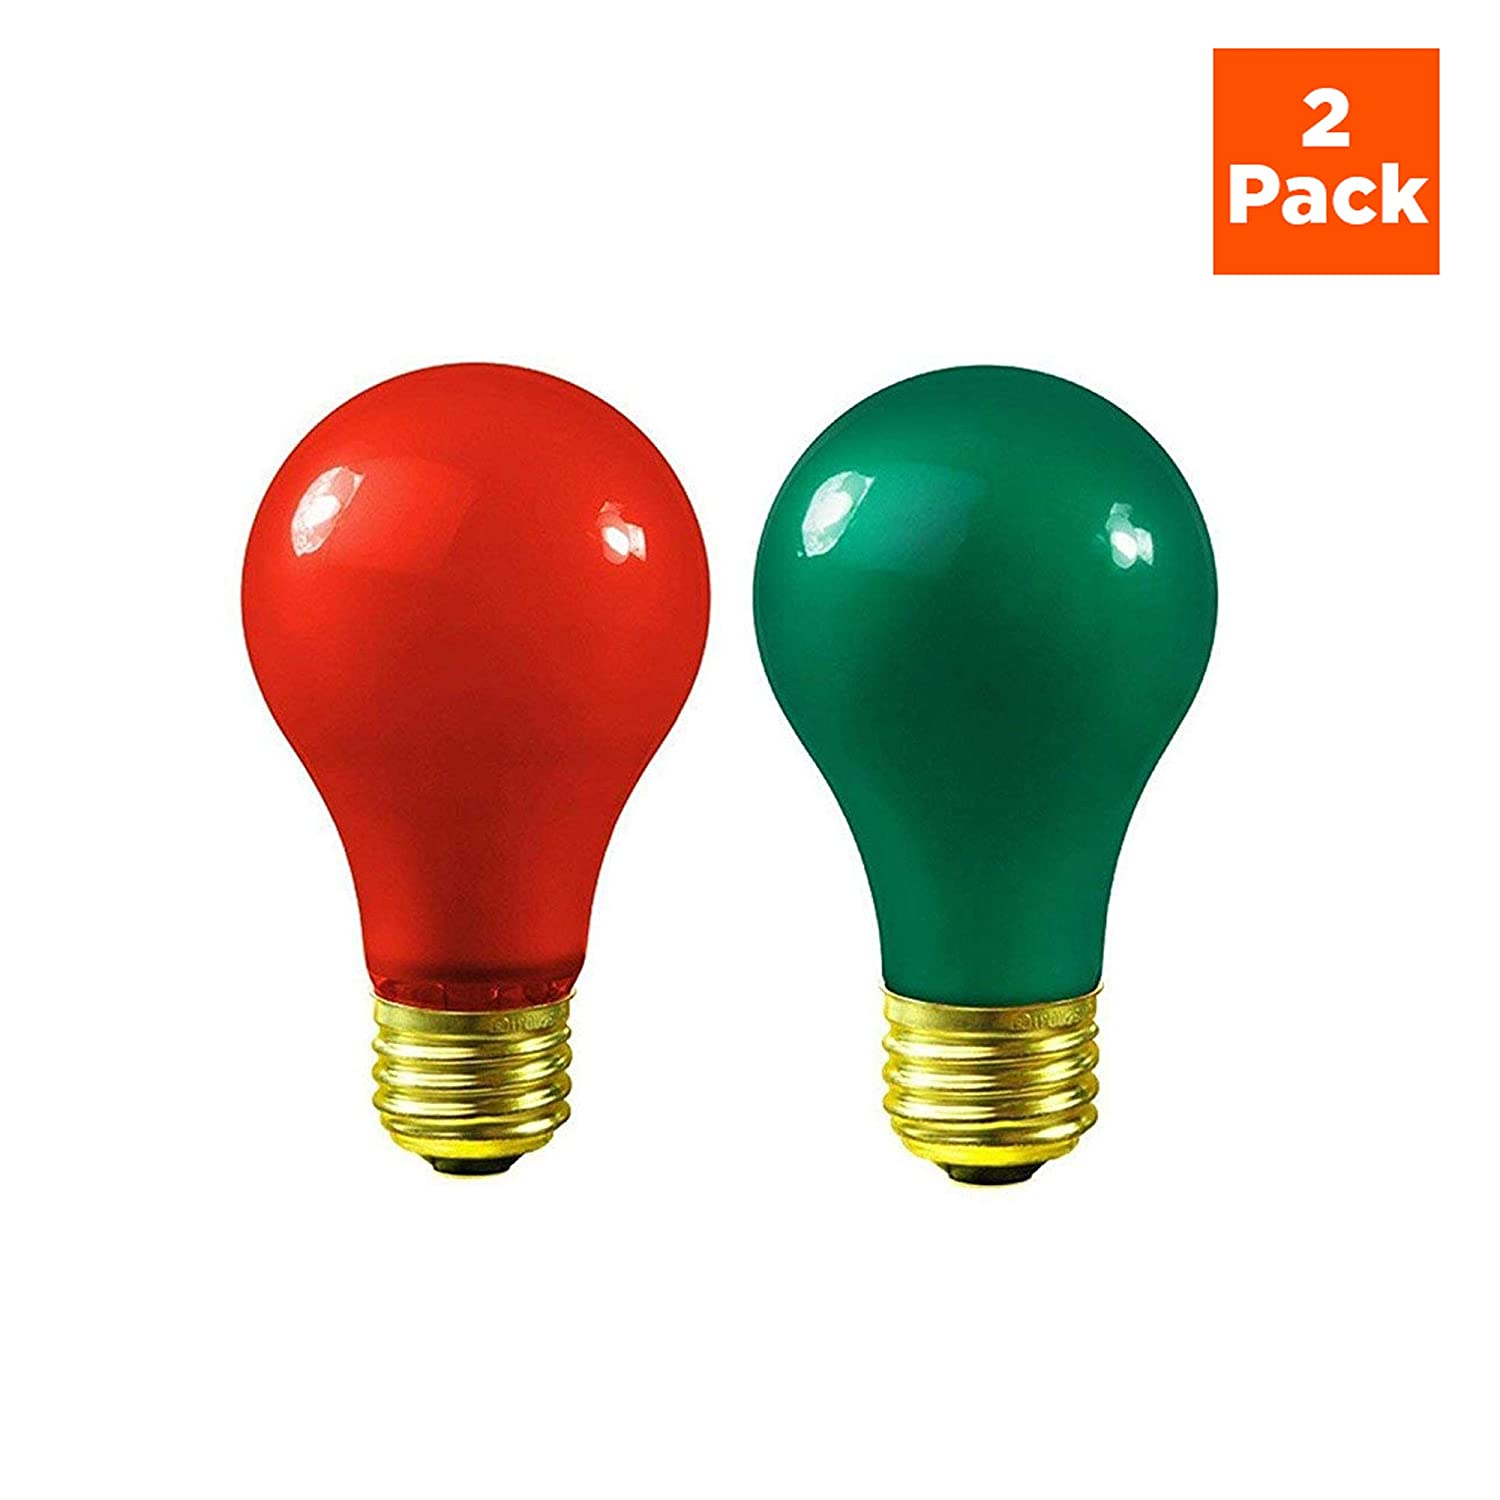 Christmas Light Bulbs.Christmas Light Bulbs 60 Watt Red And Green Light Bulbs Dimmable E26 Base By Goodbulb 60 Watt A19 2 Pack